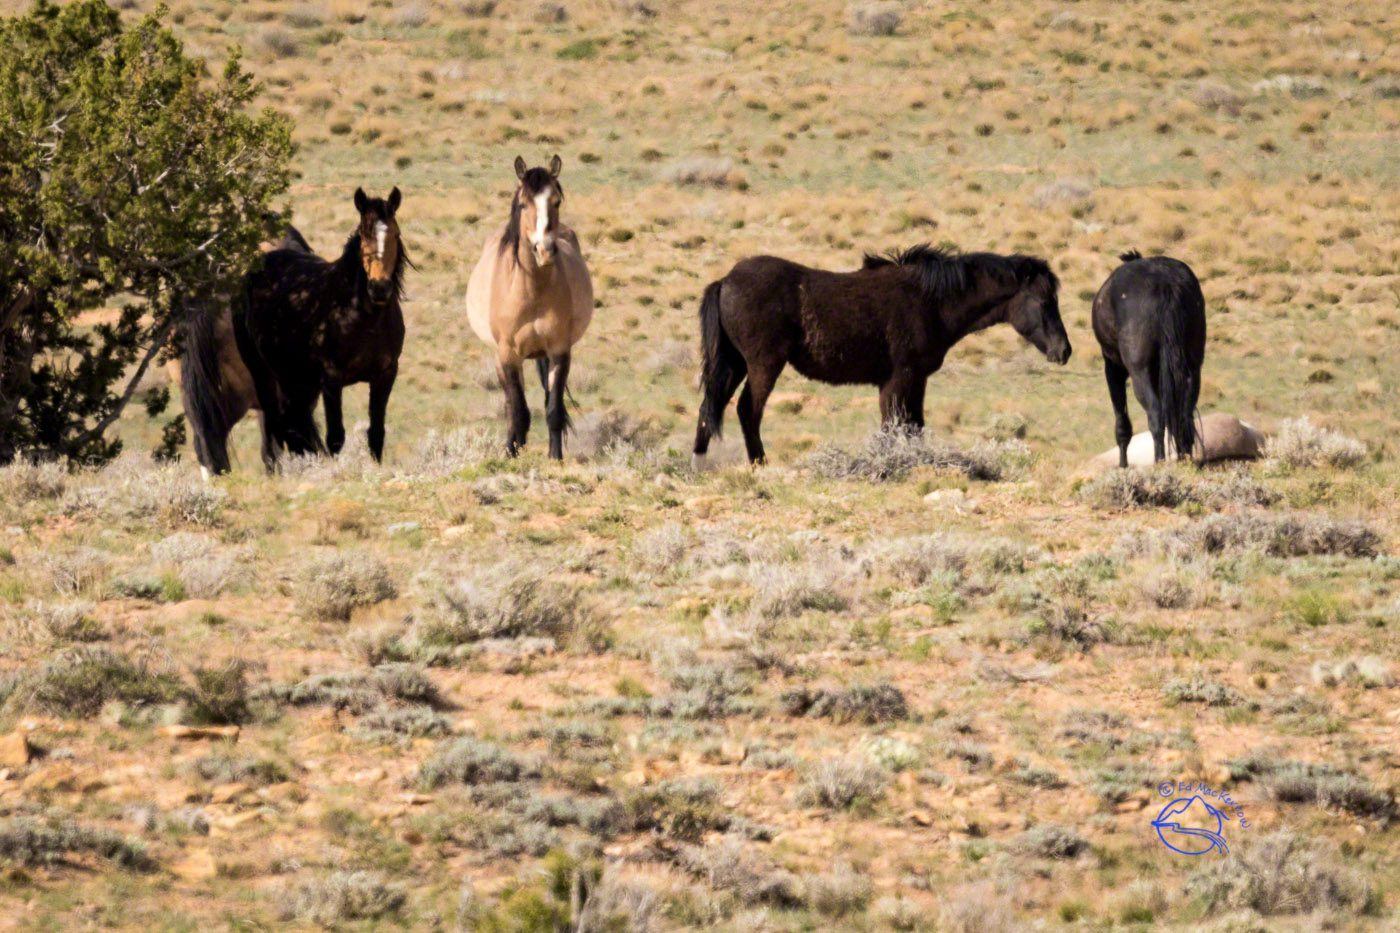 The injured mare lays down on the right side of the image while members of her band watch over her.